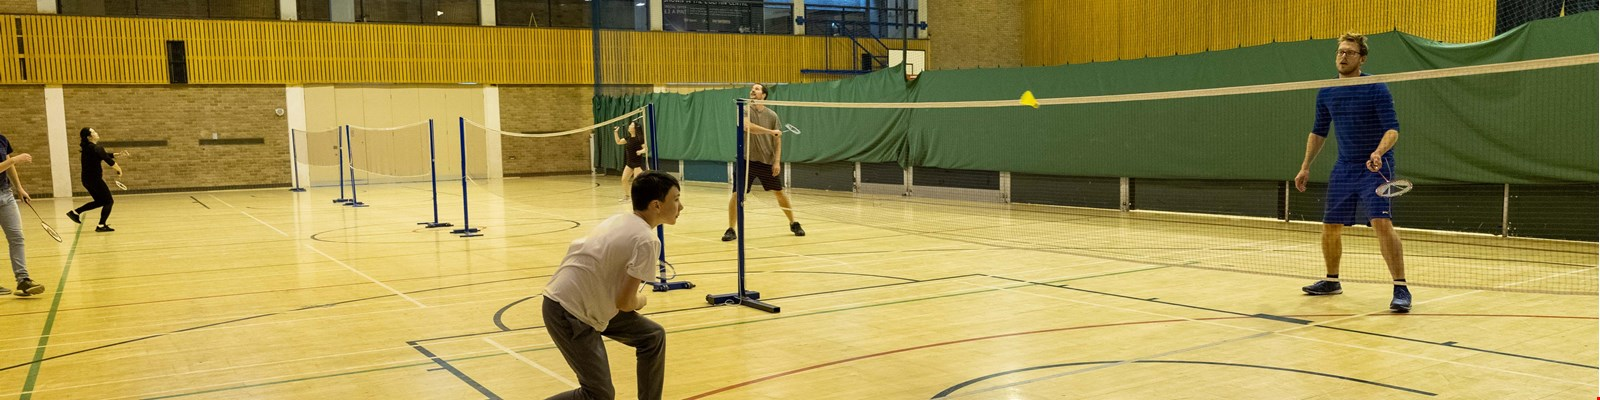 people playing badminton in the courts